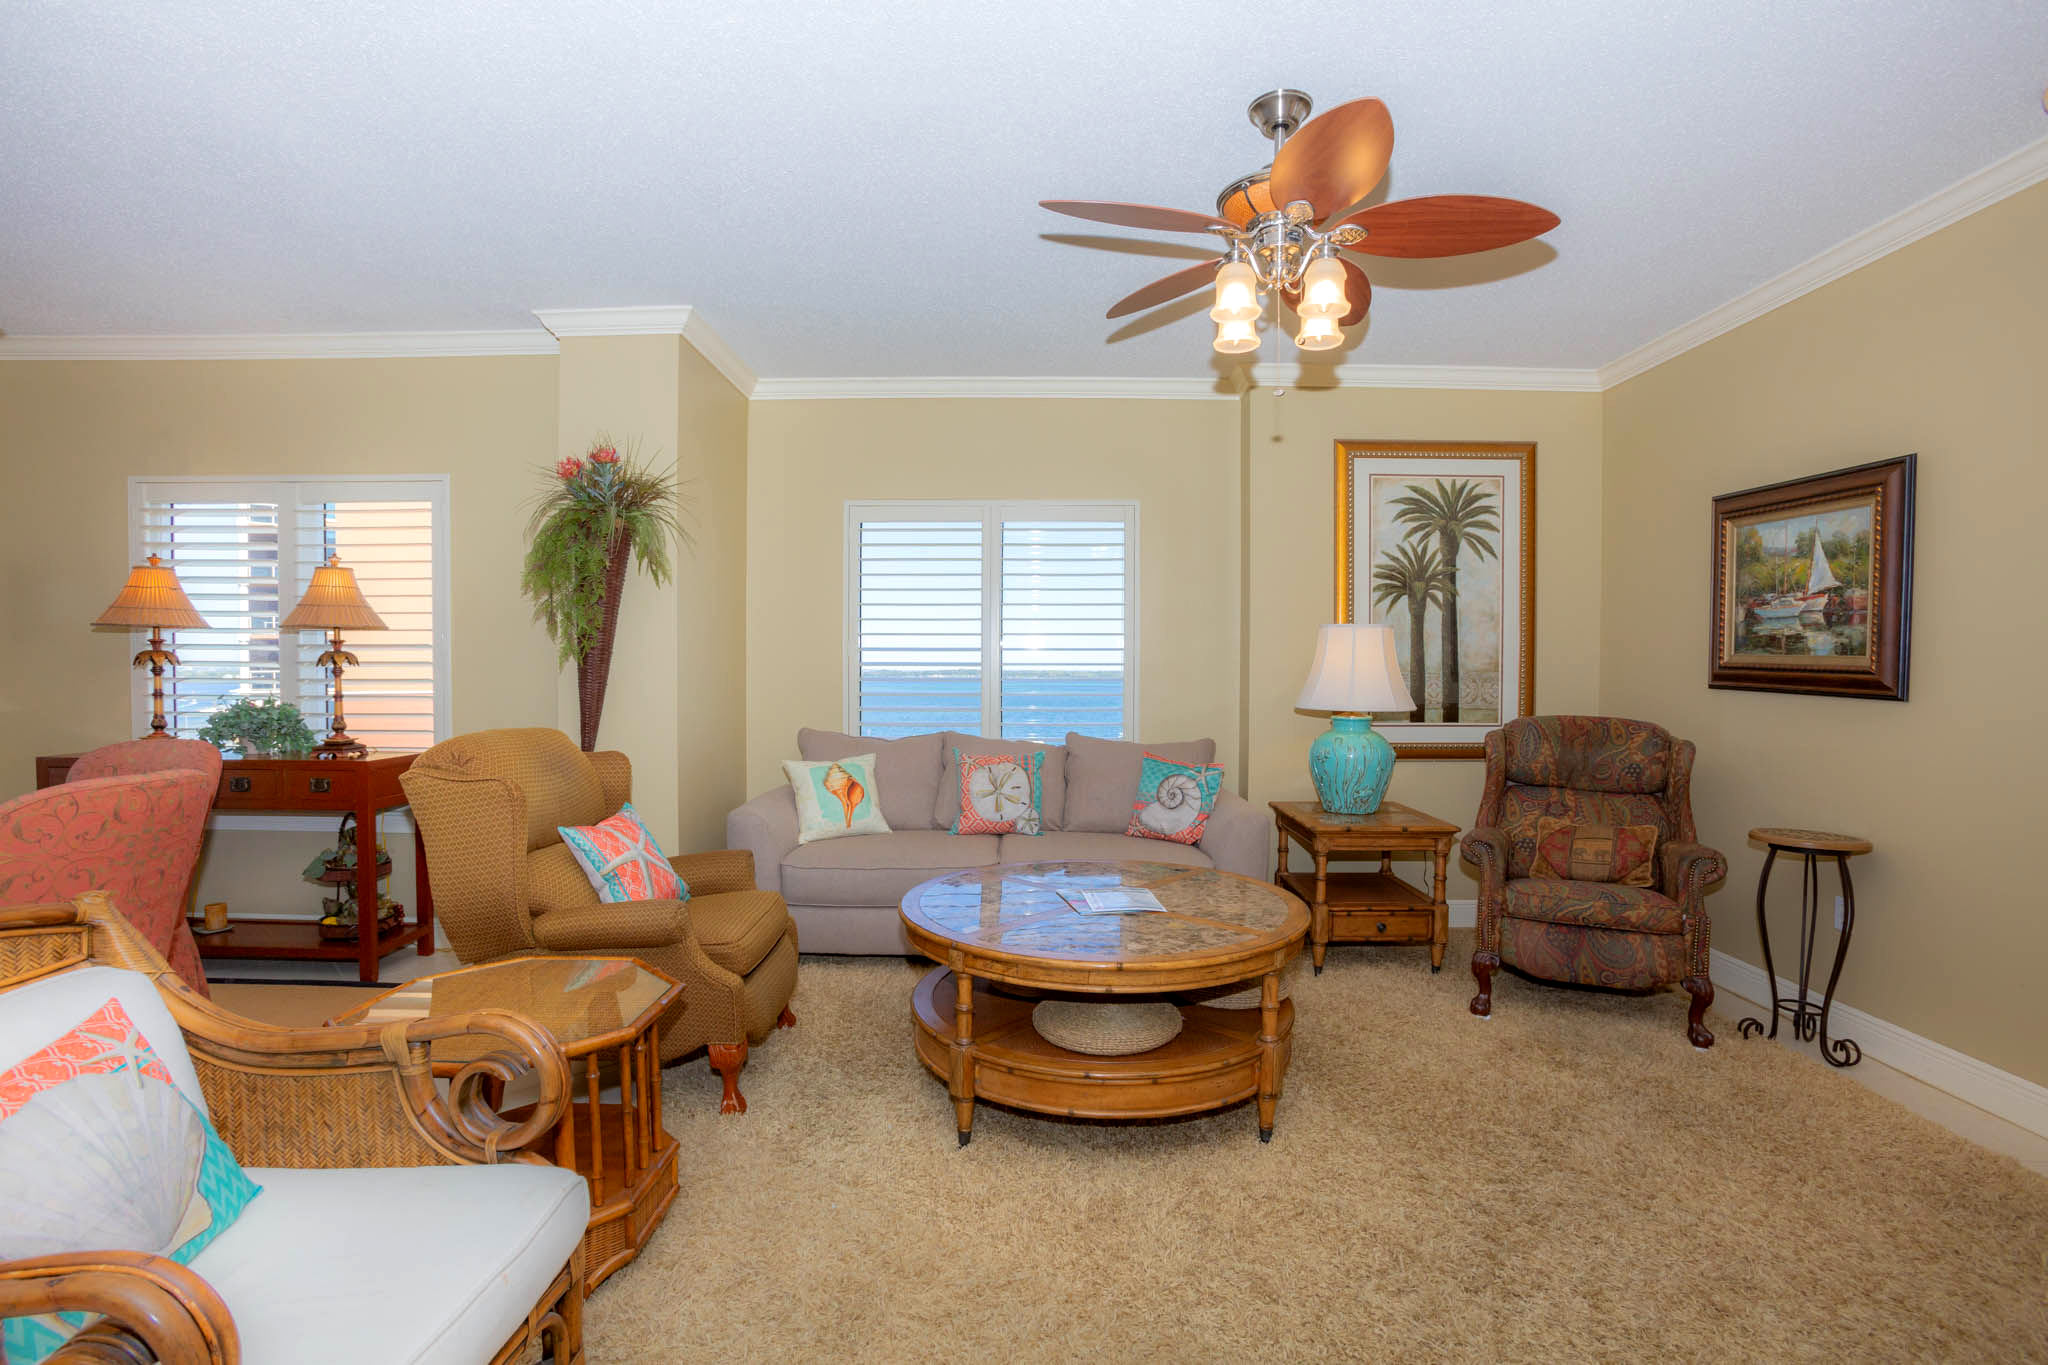 South Harbour #9F Condo rental in South Harbour ~ Pensacola Beach Vacation Rentals by BeachGuide in Pensacola Beach Florida - #12